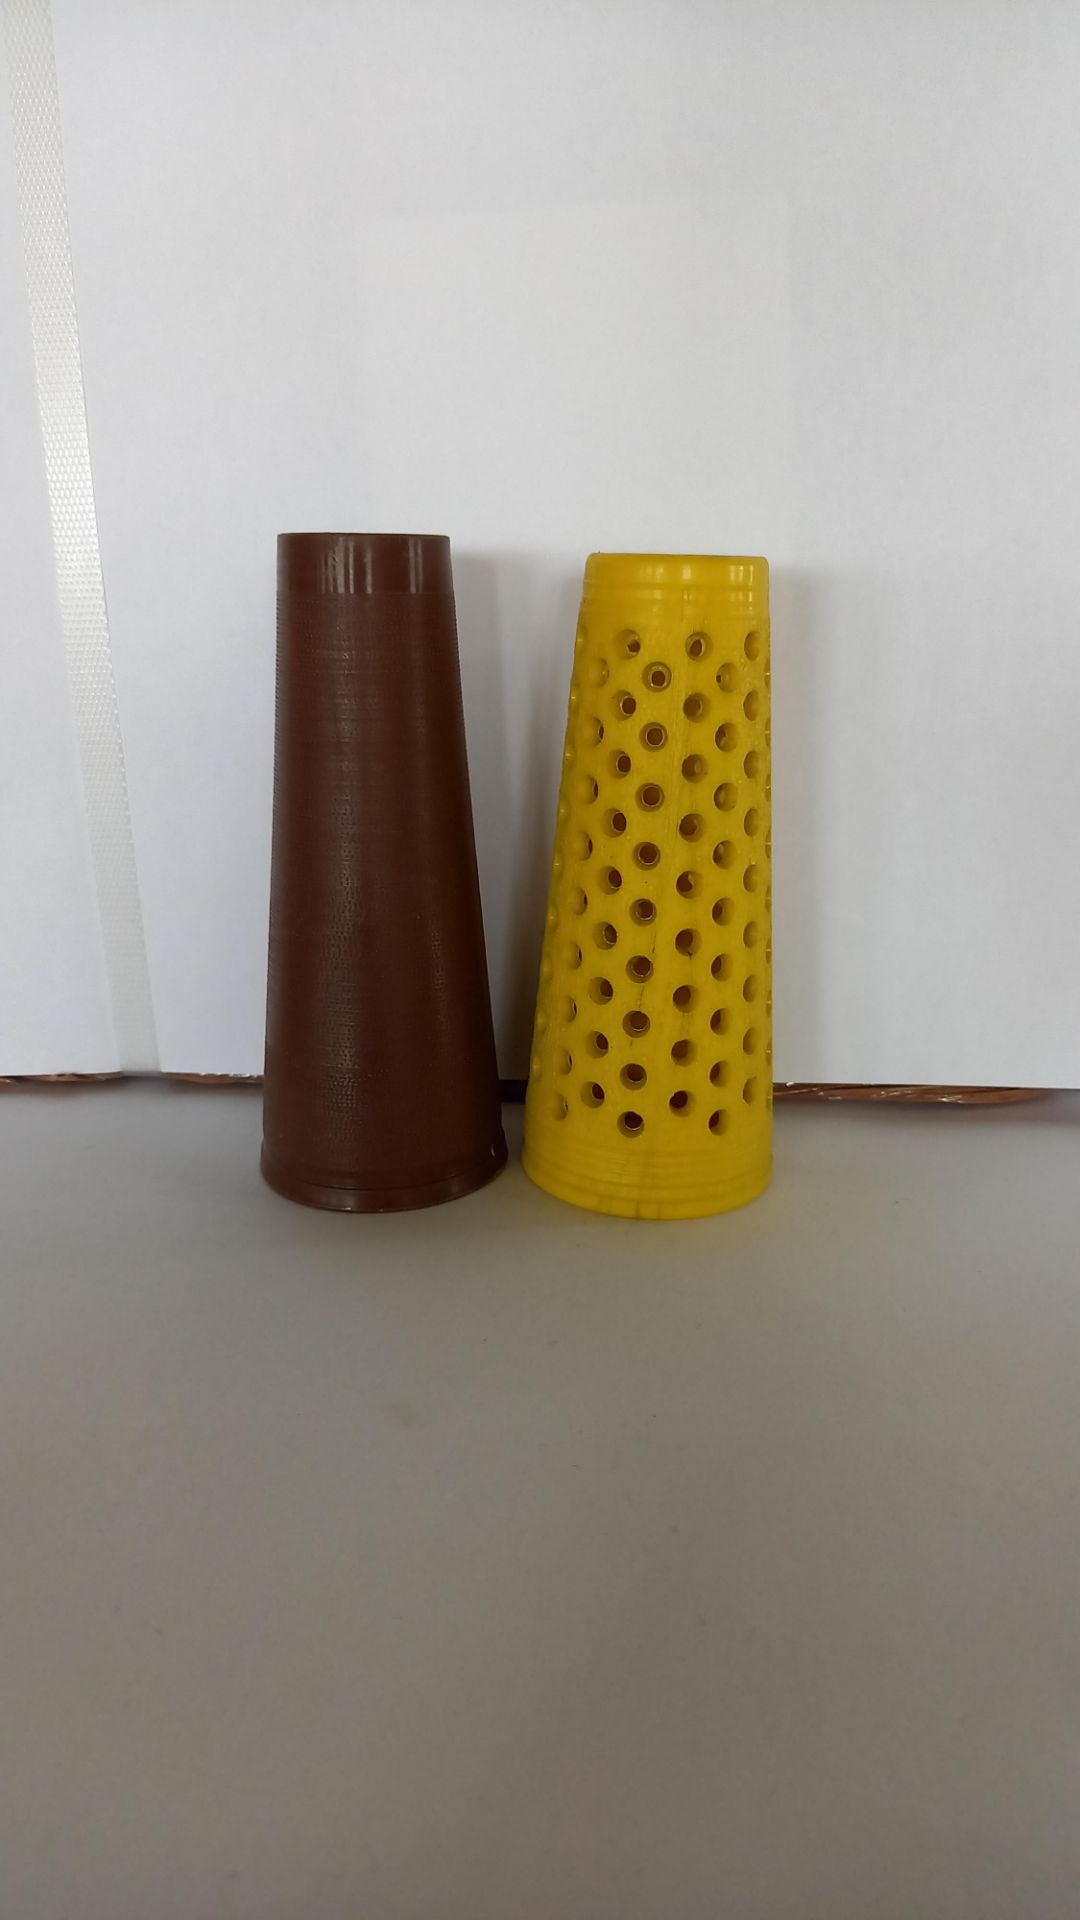 """Pallet of 5"""" Traverse mixed Plastic cones 2.5"""" base to 1.5"""" - Image 2 of 2"""